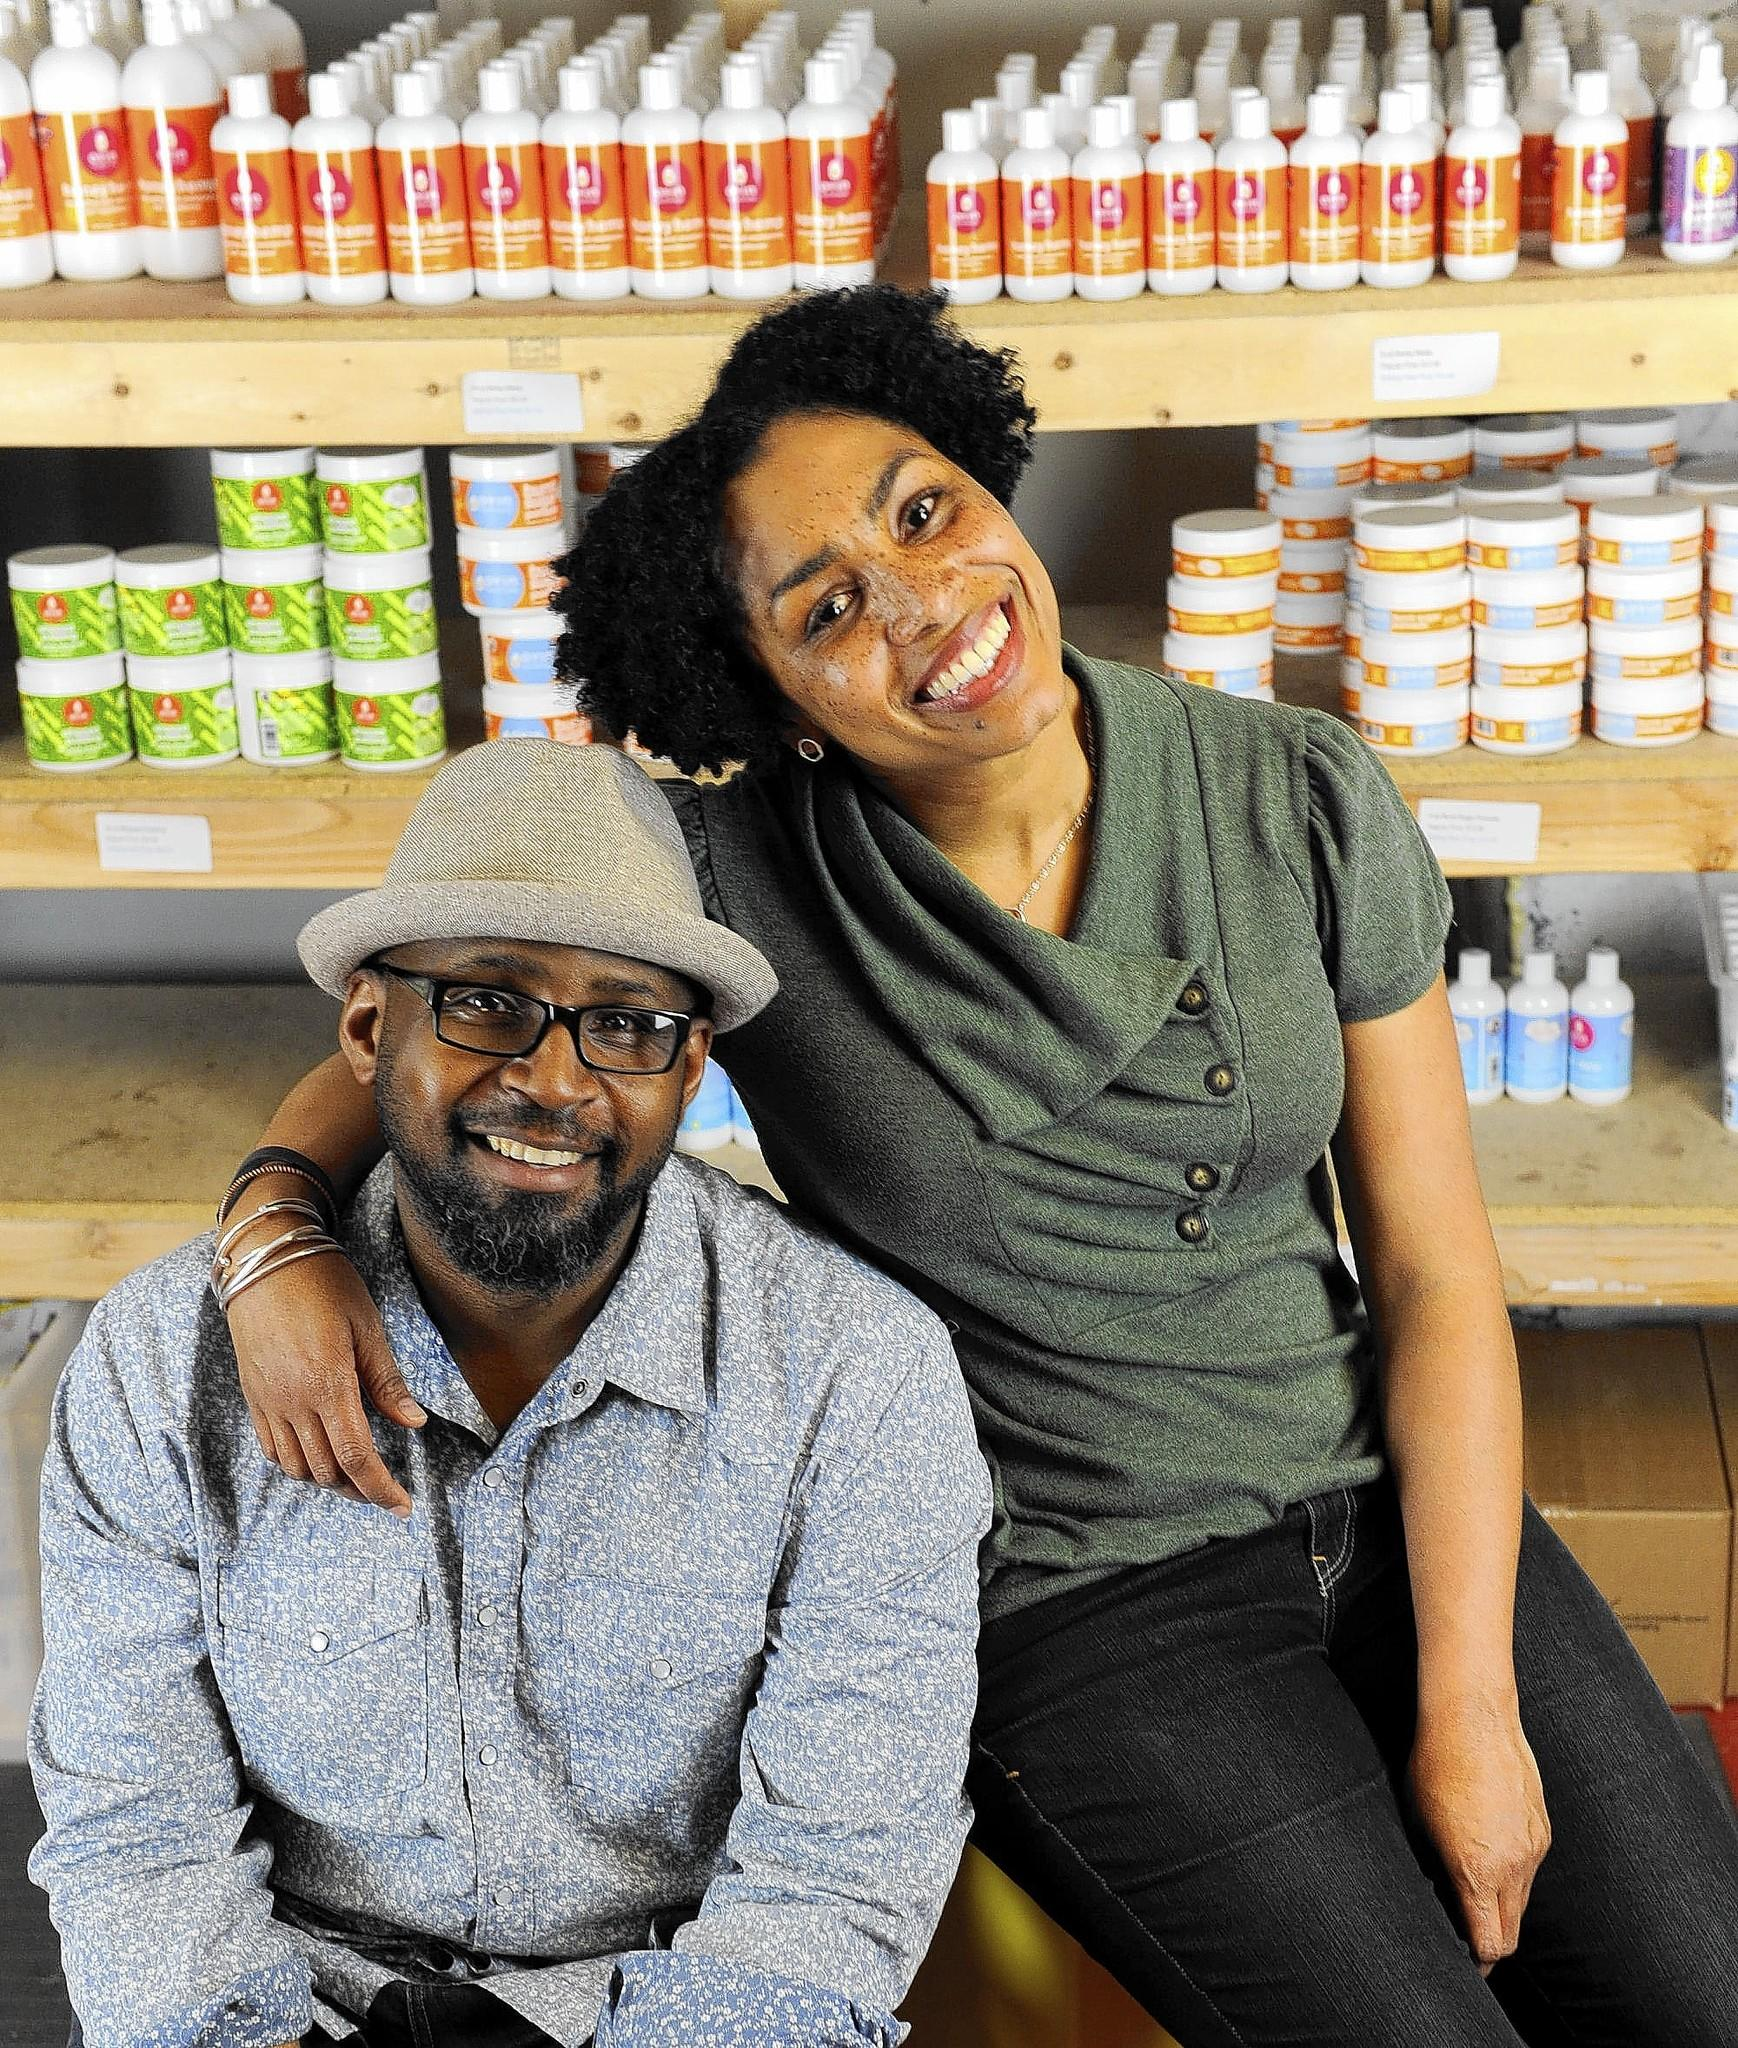 Jamyla, right, and her husband Pierre Bennu started a line of handmade skin and hair products called Oyin Handmade that are now being sold in Target stores.